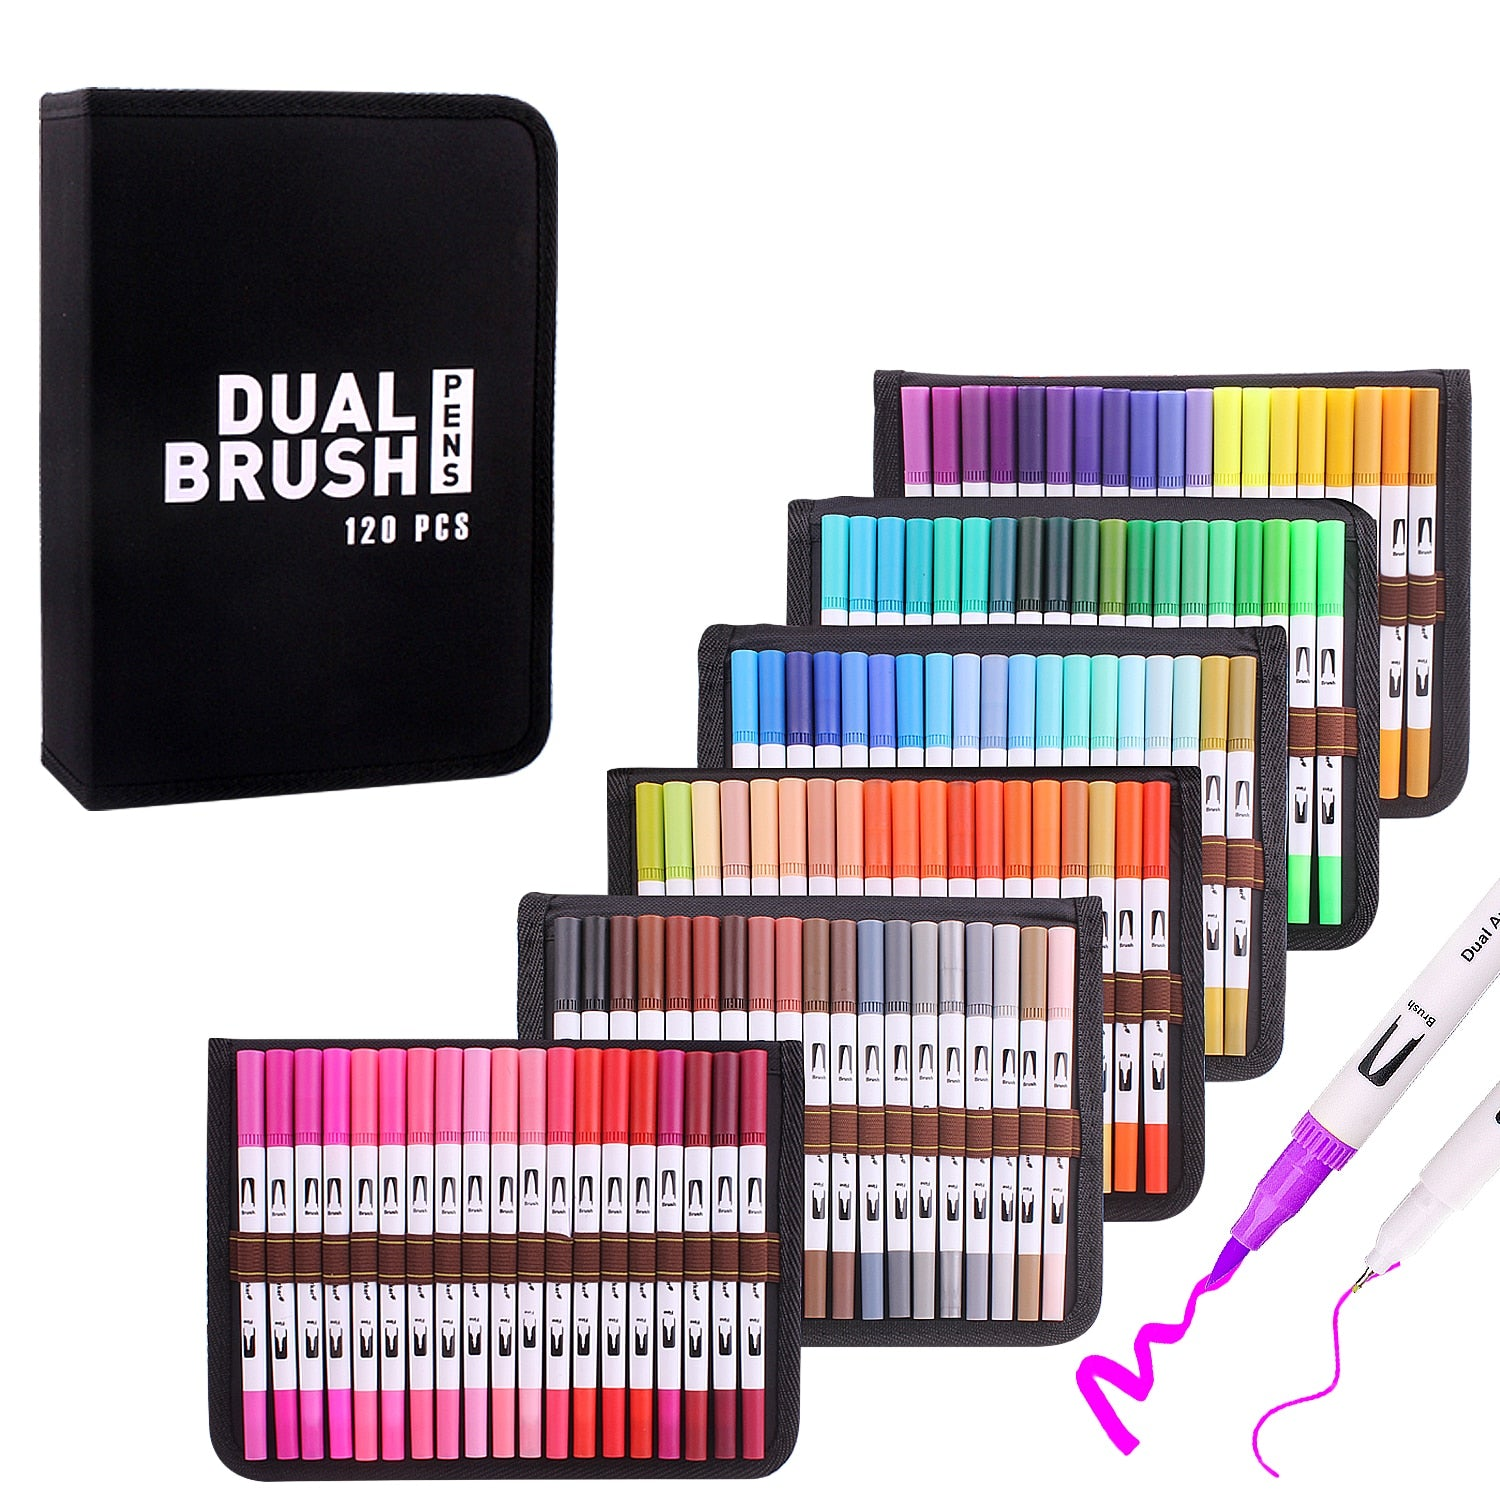 WaterColor Pens 12-120 Dual Tip Brush - Youdreamwebring